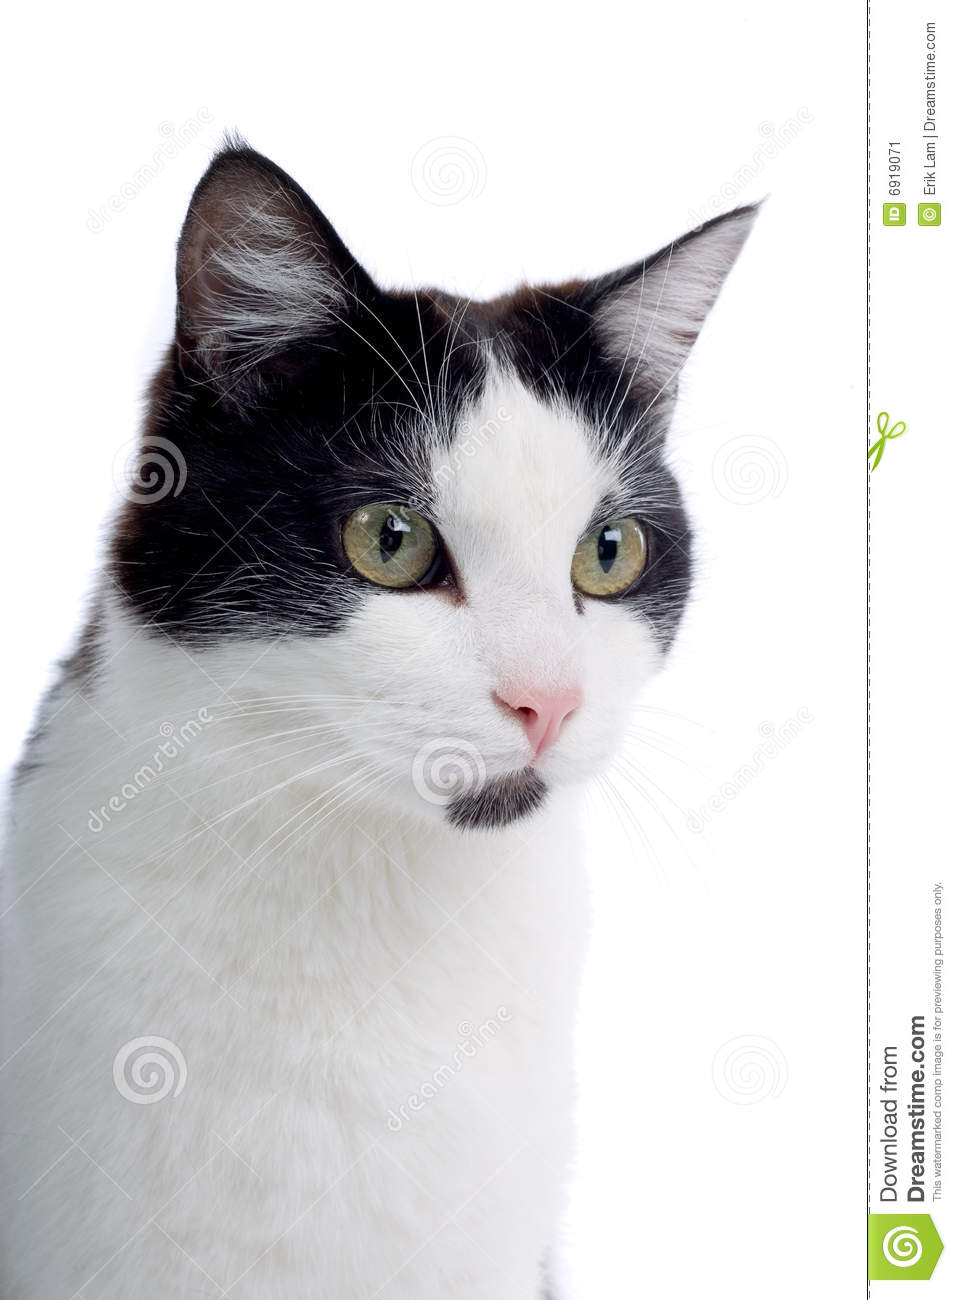 Cute Black And White Cat Stock Image Image Of Indoors 6919071